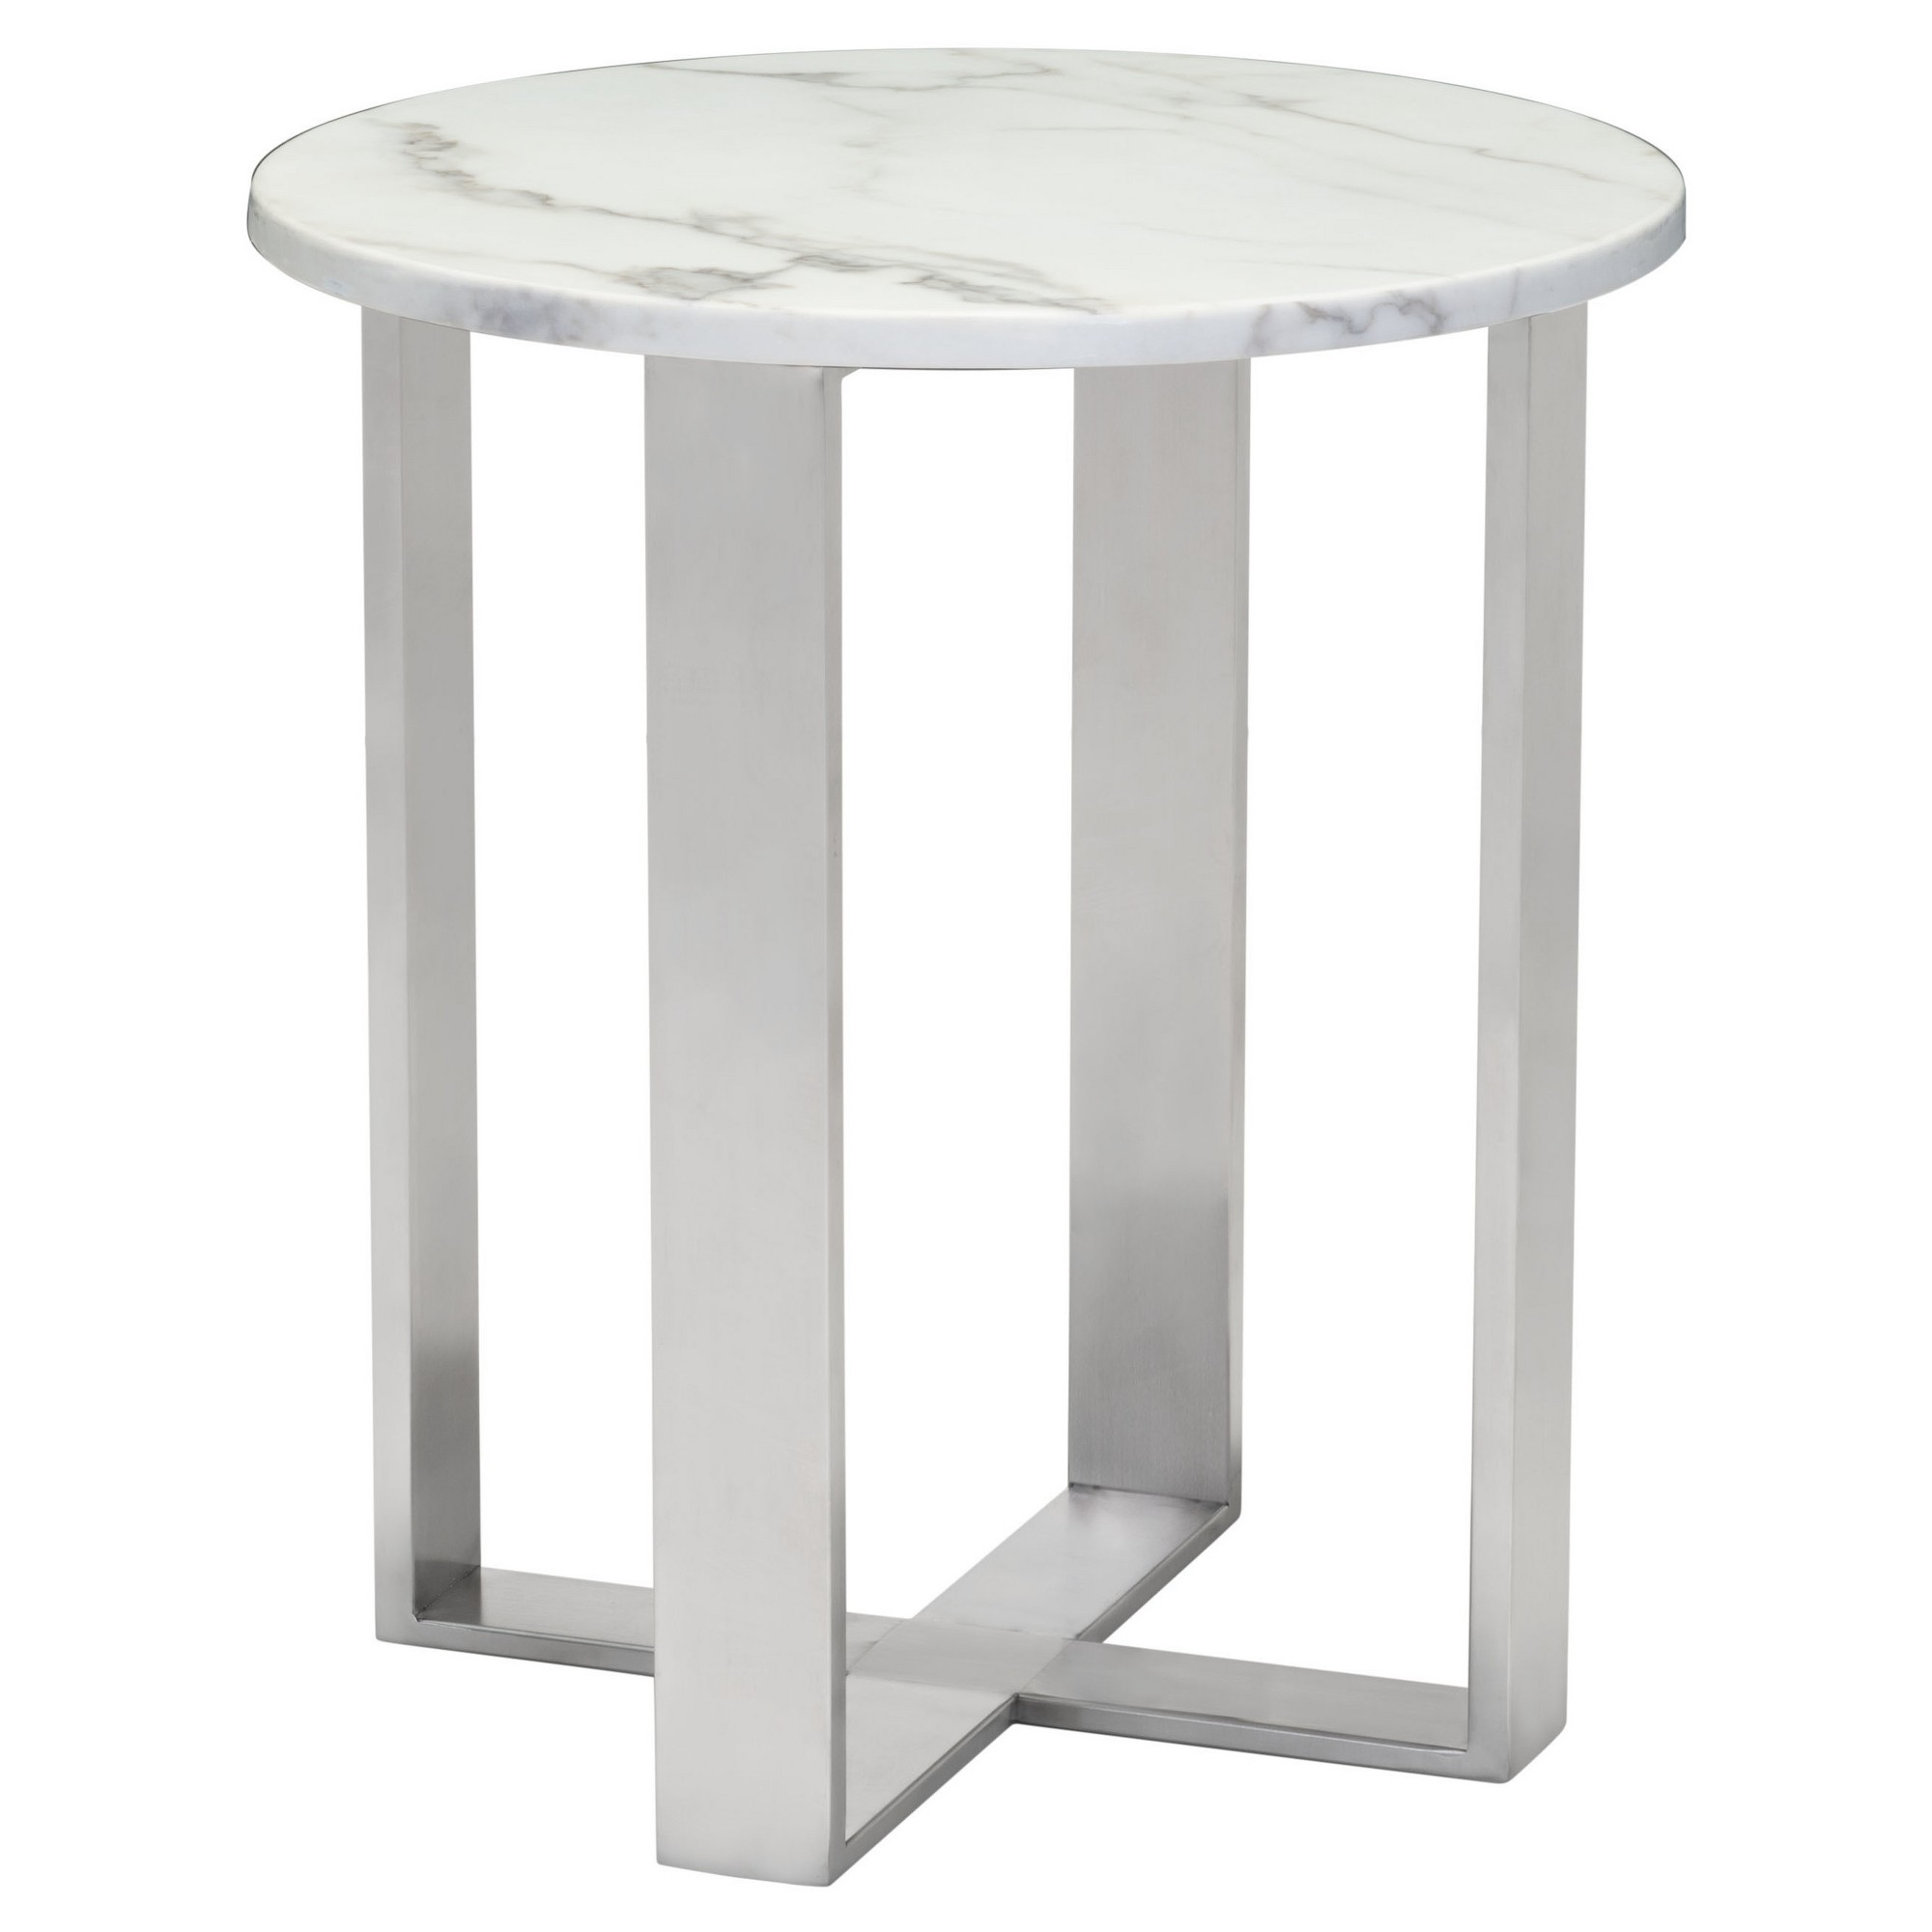 modern round faux marble side table stone grey brushed accent stainless steel home retro console small plastic garden white and oak storage solutions outside patio set goods lamps